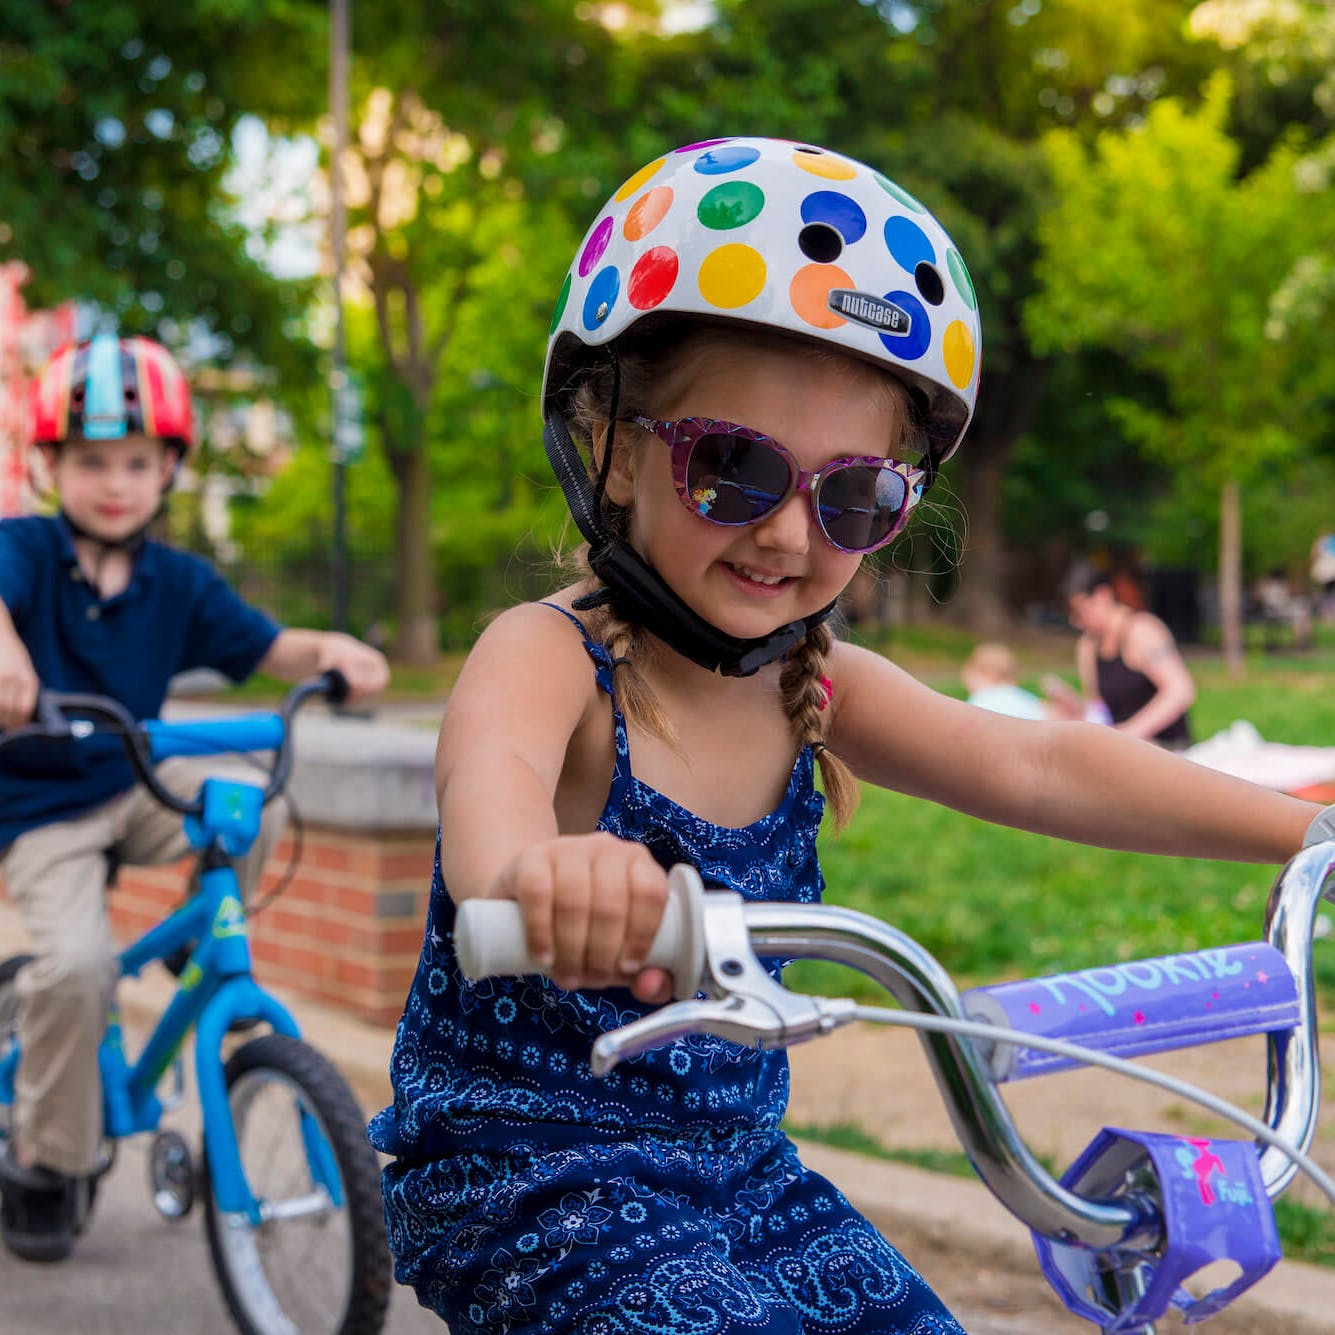 A child wearing sunglasses leads the way for another child riding a bike with training wheels